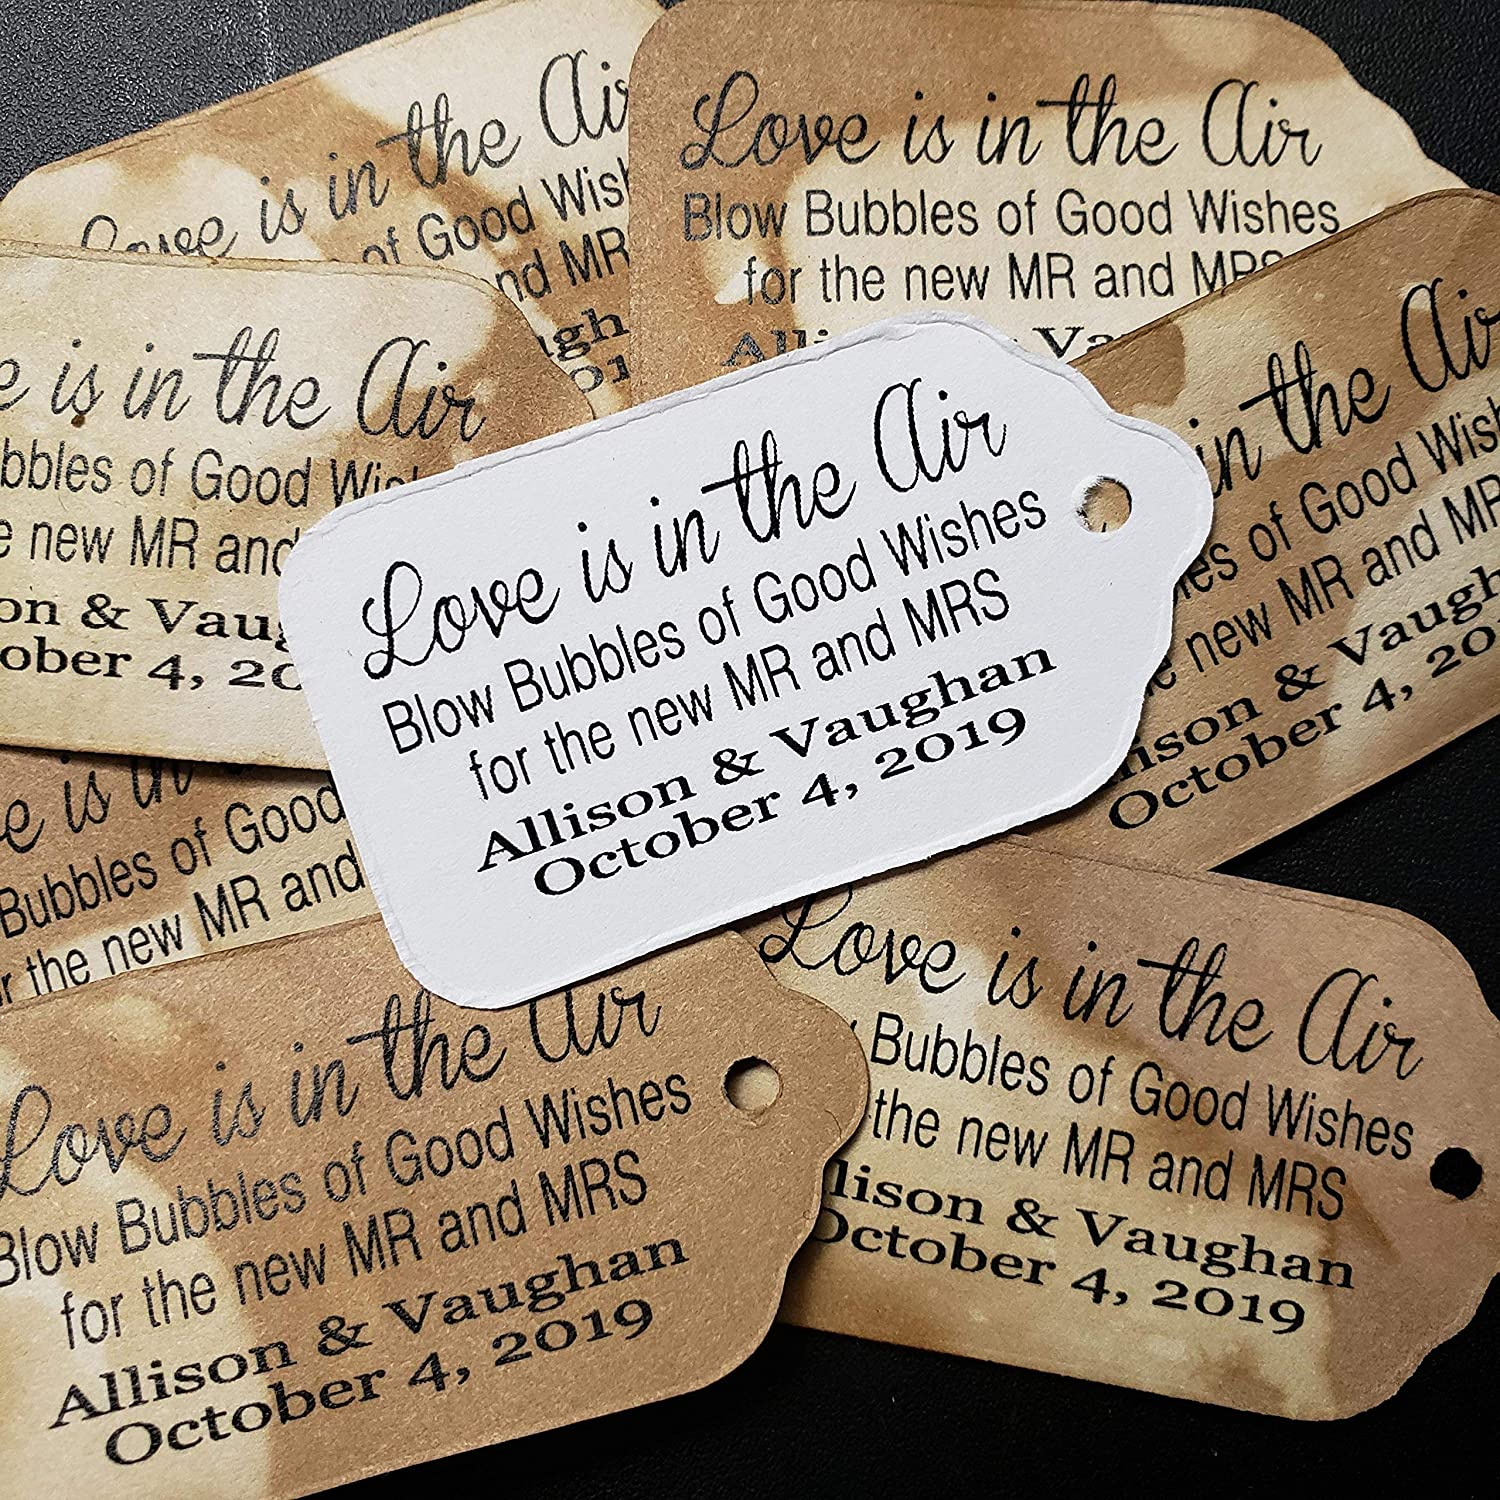 my SMALL 2 x 1 1//8 Love is in the Air Blow Bubbles of Good Wishes for the new MR and MRS Personalized Tea Stained Favor Tag sets of 25 Tags